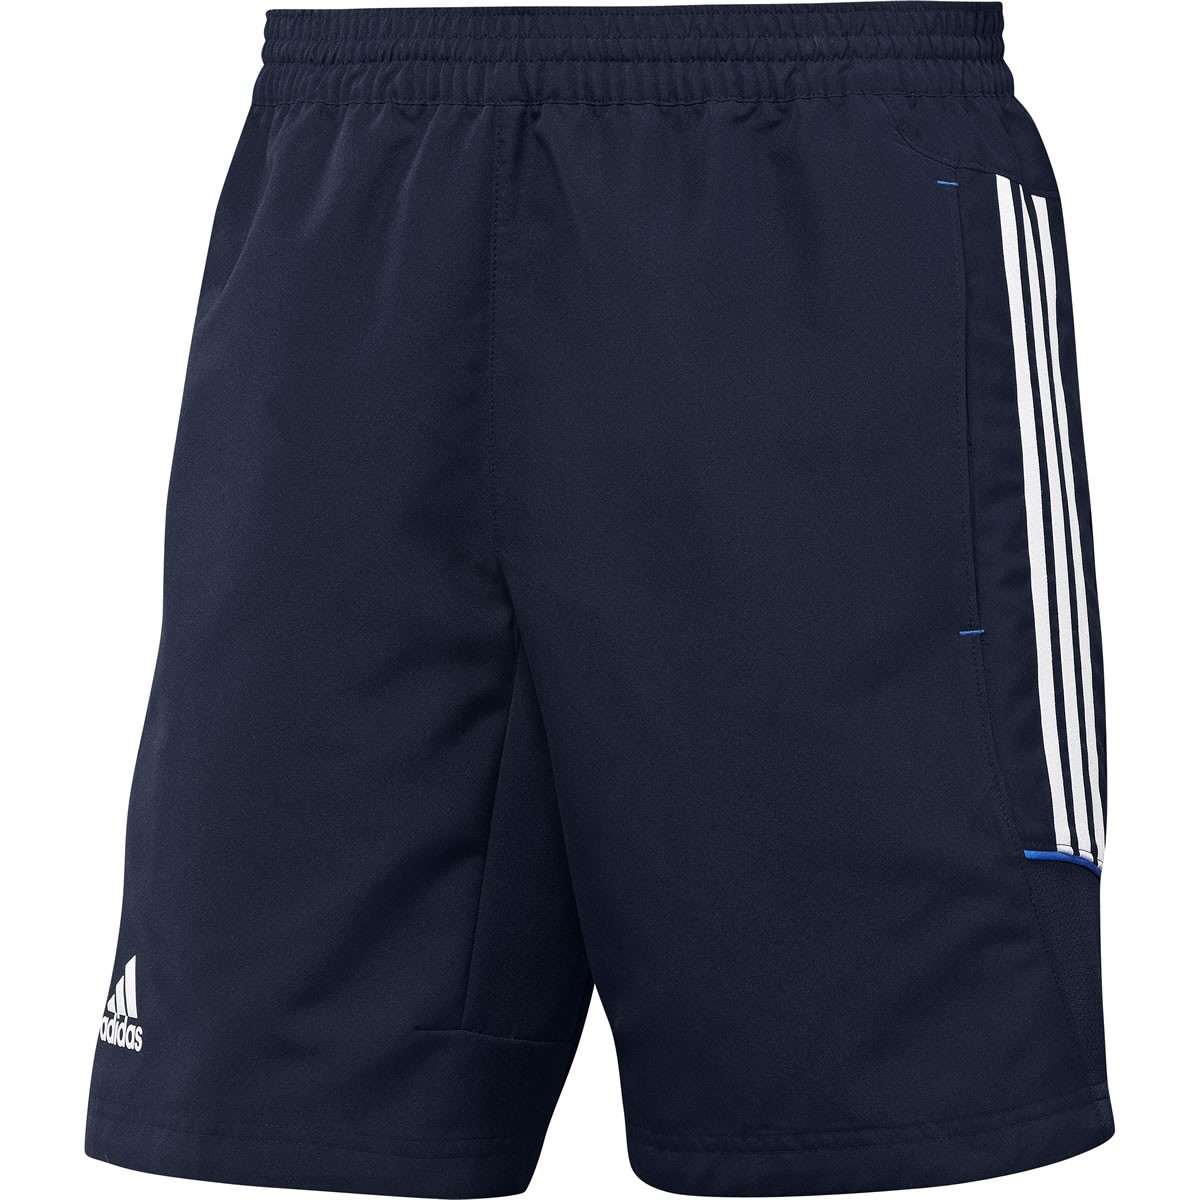 adidas m nner t12 woven short herren kurze hose jogging fitness abverkauf sale ebay. Black Bedroom Furniture Sets. Home Design Ideas